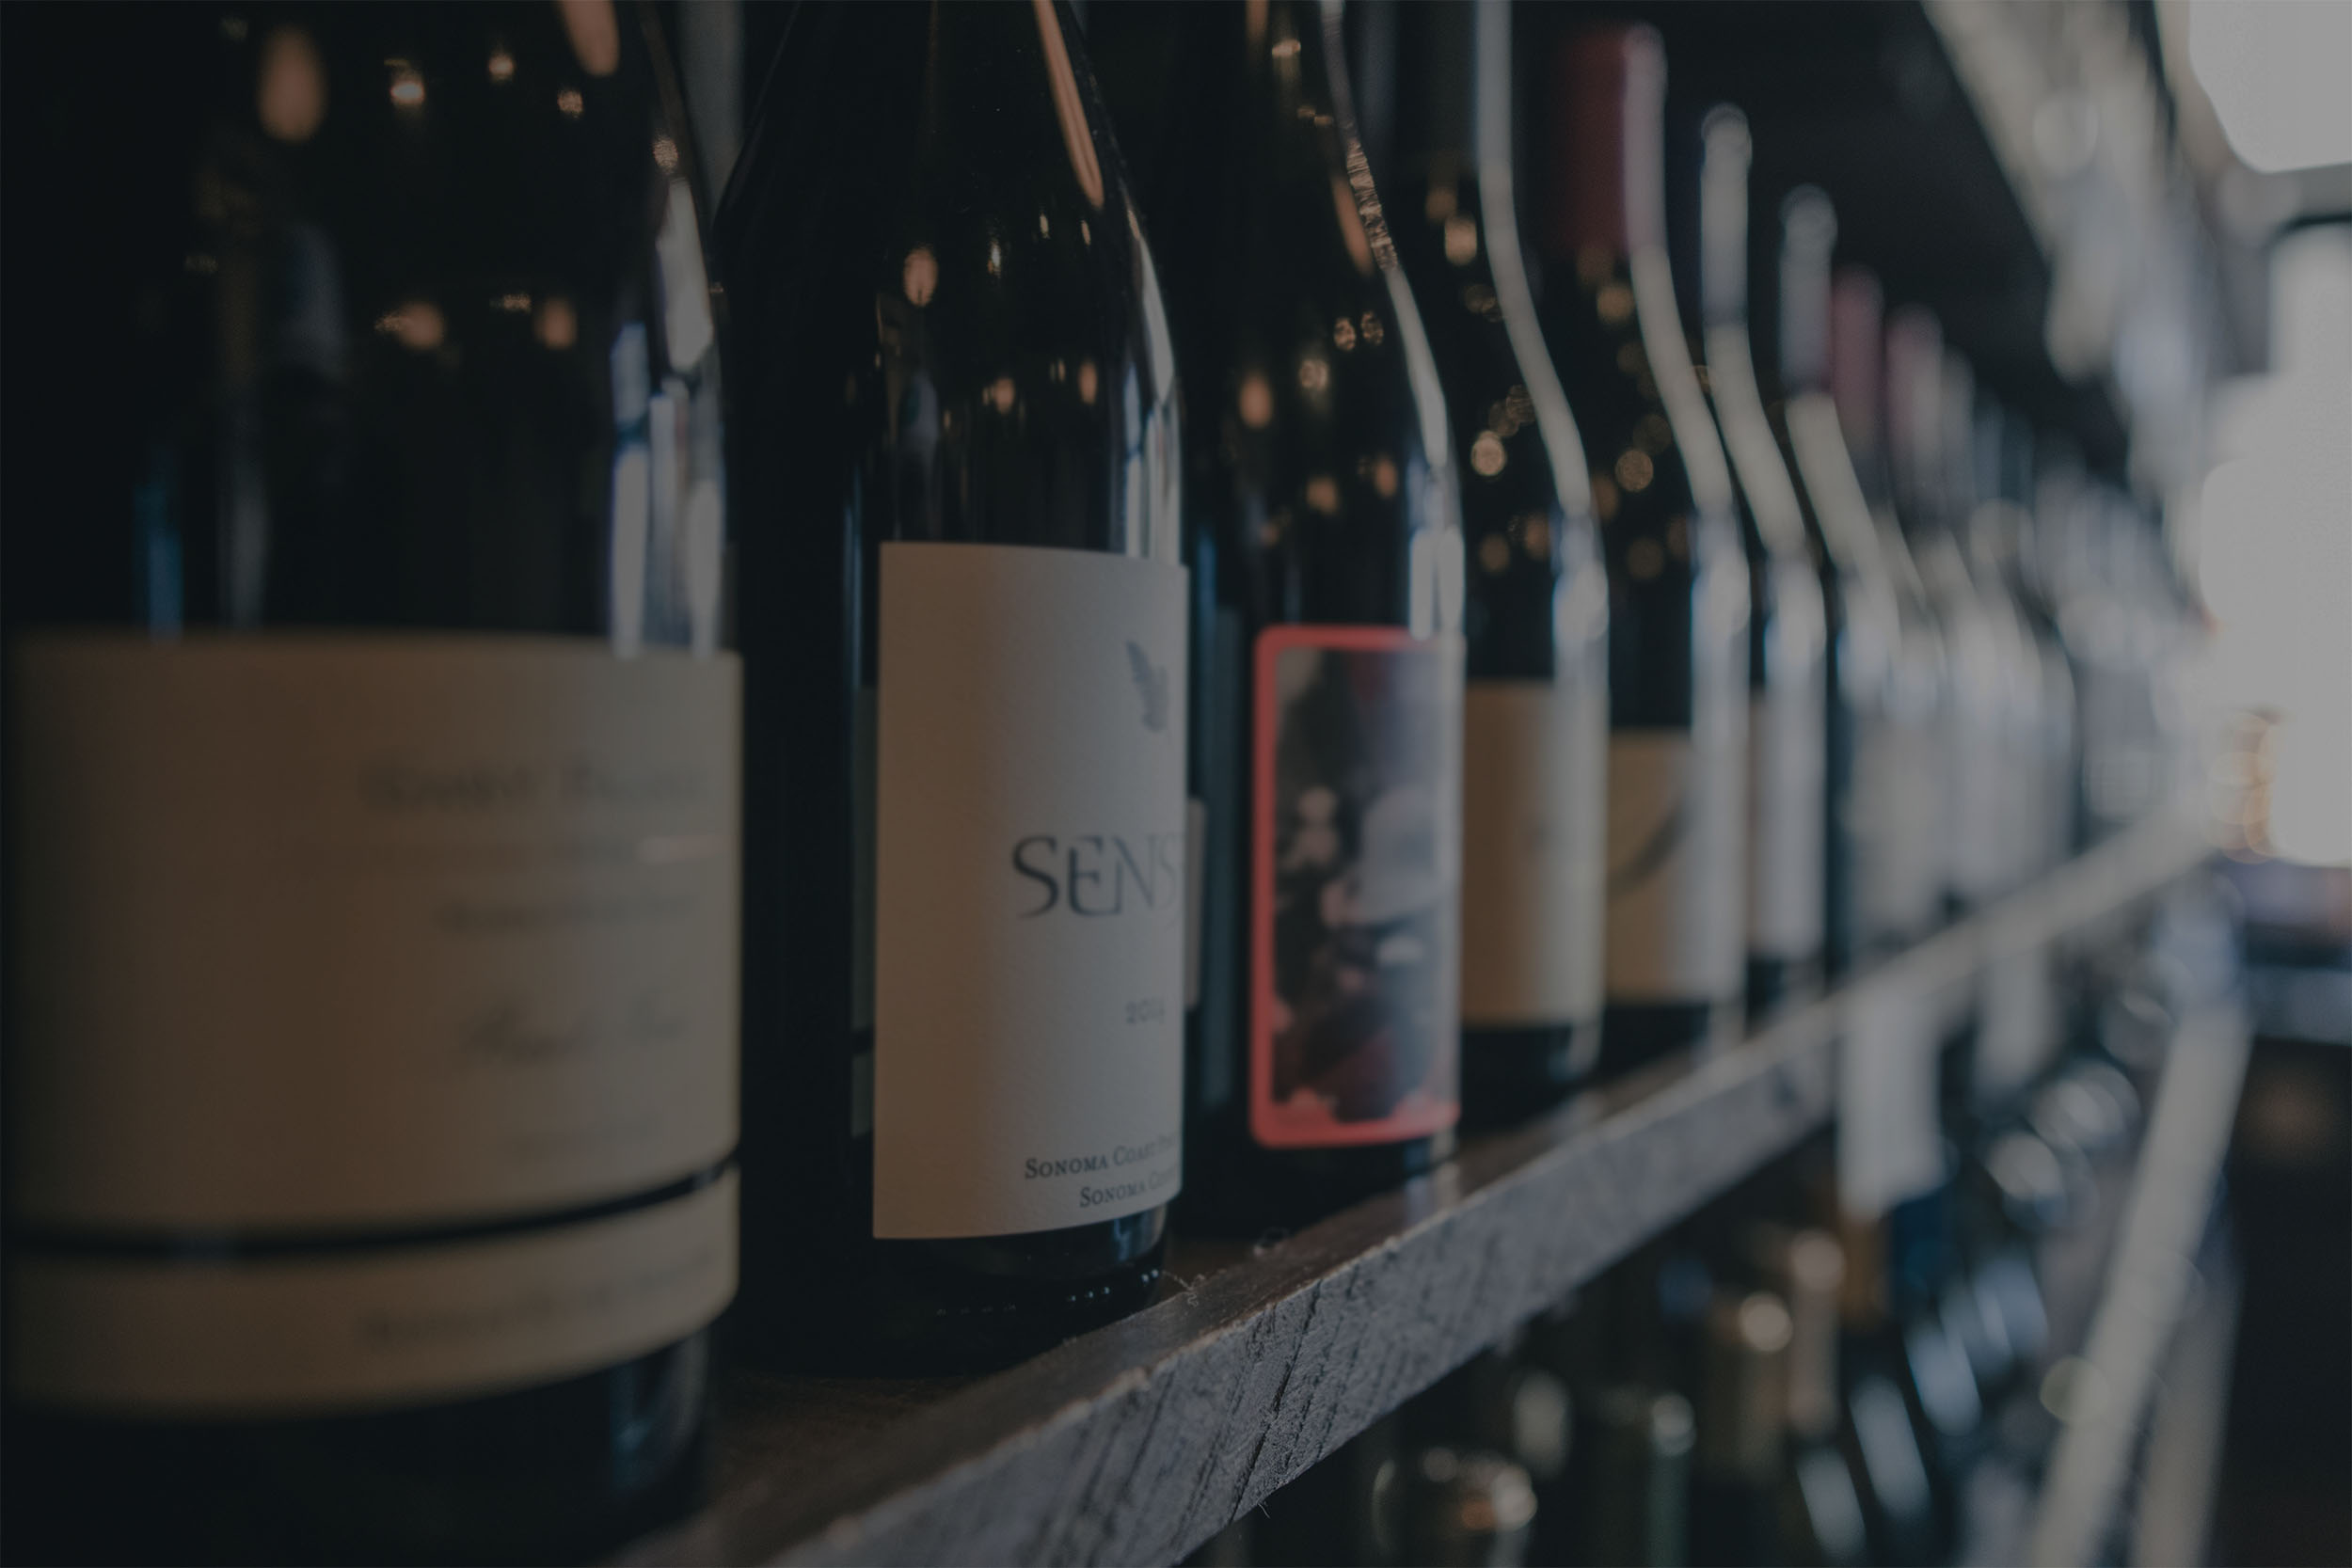 Blurry image of bottles of wine on a shelf